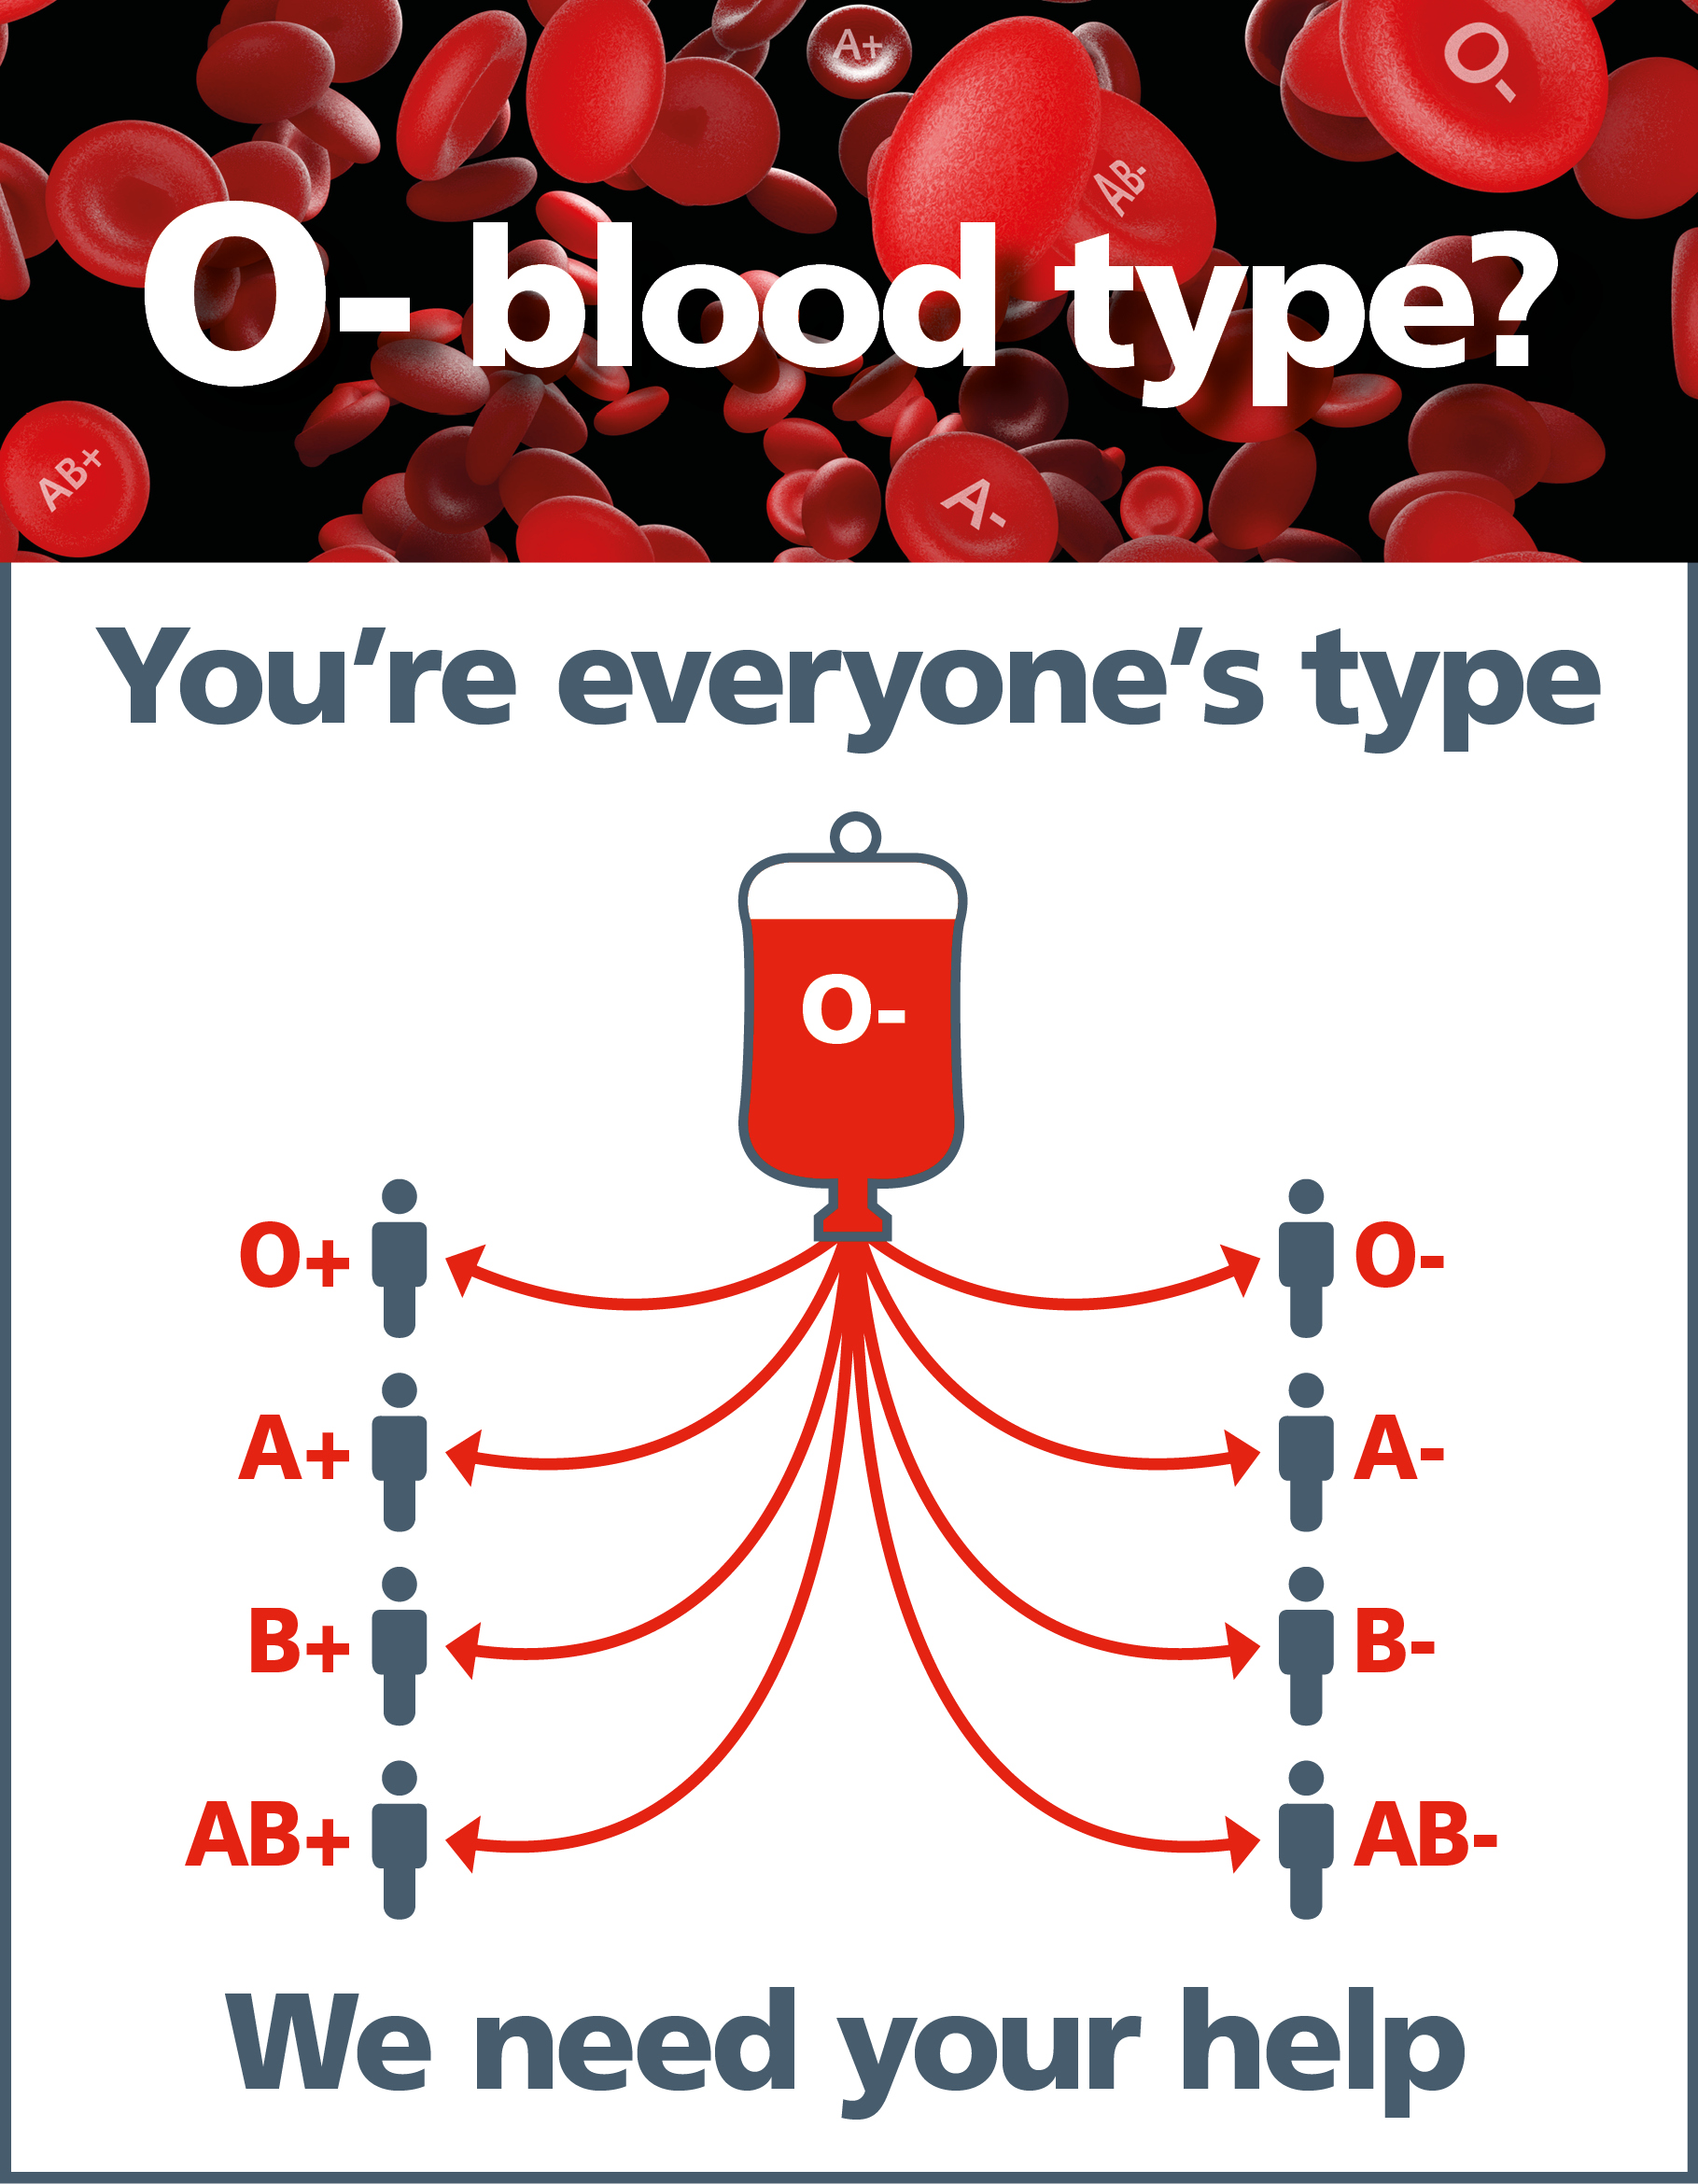 O negative donors - we need your help